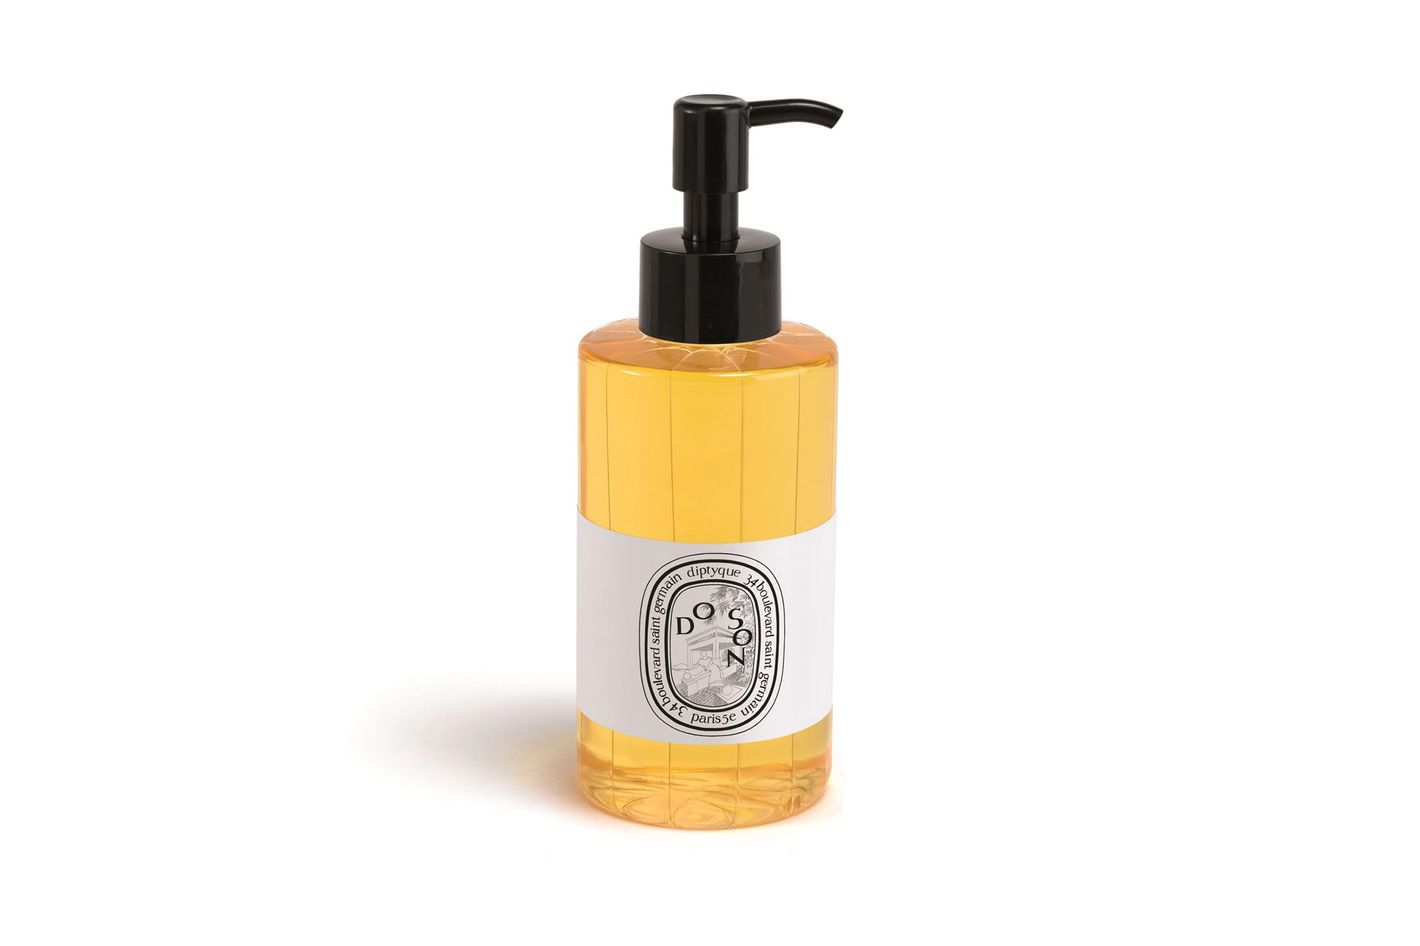 Diptyque Do Son shower oil.